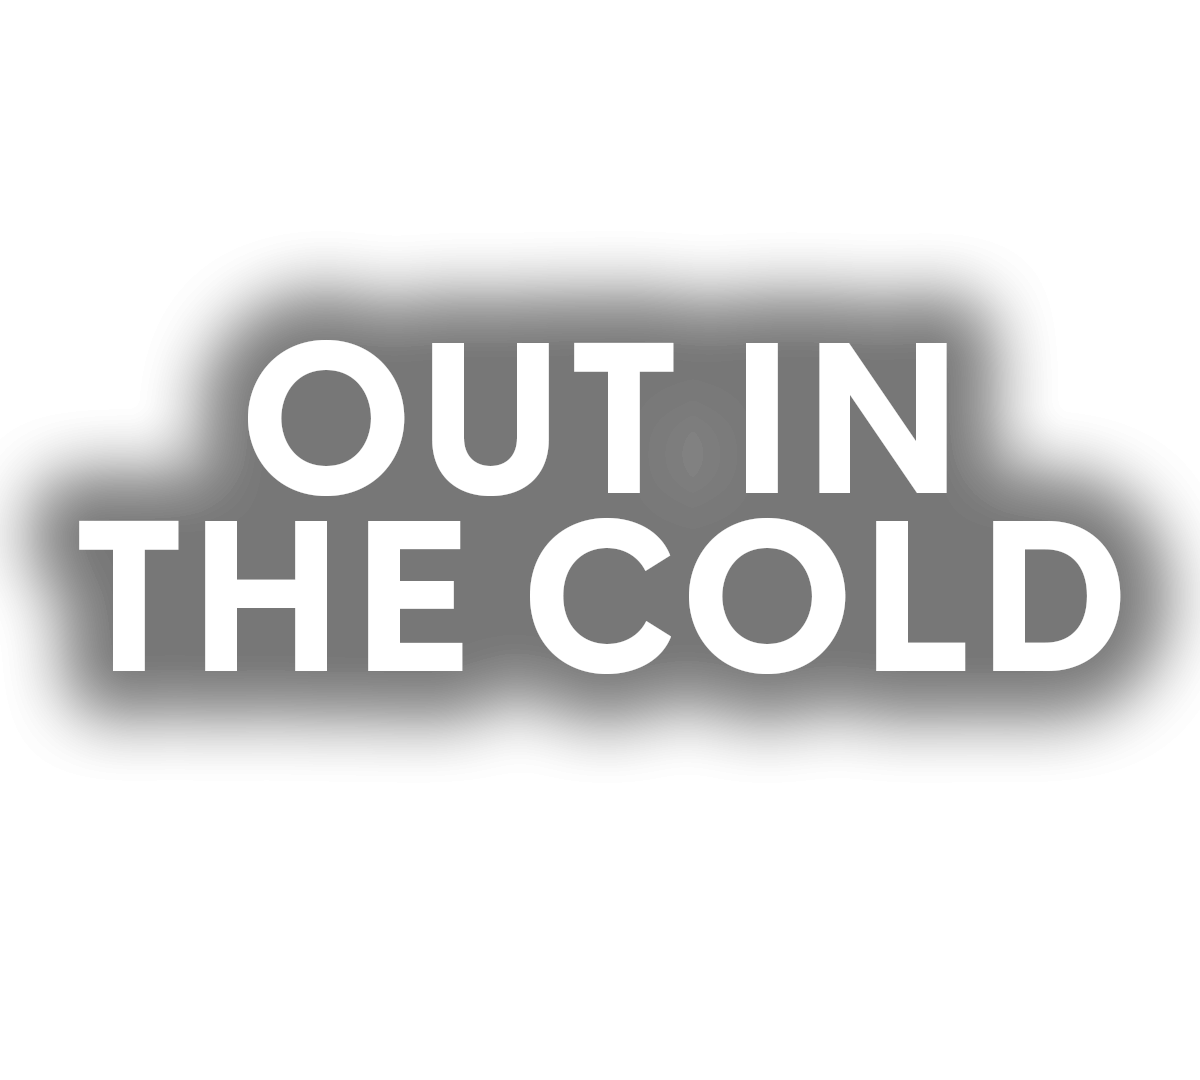 Out in the cold: Homelessness on Channel 4 News